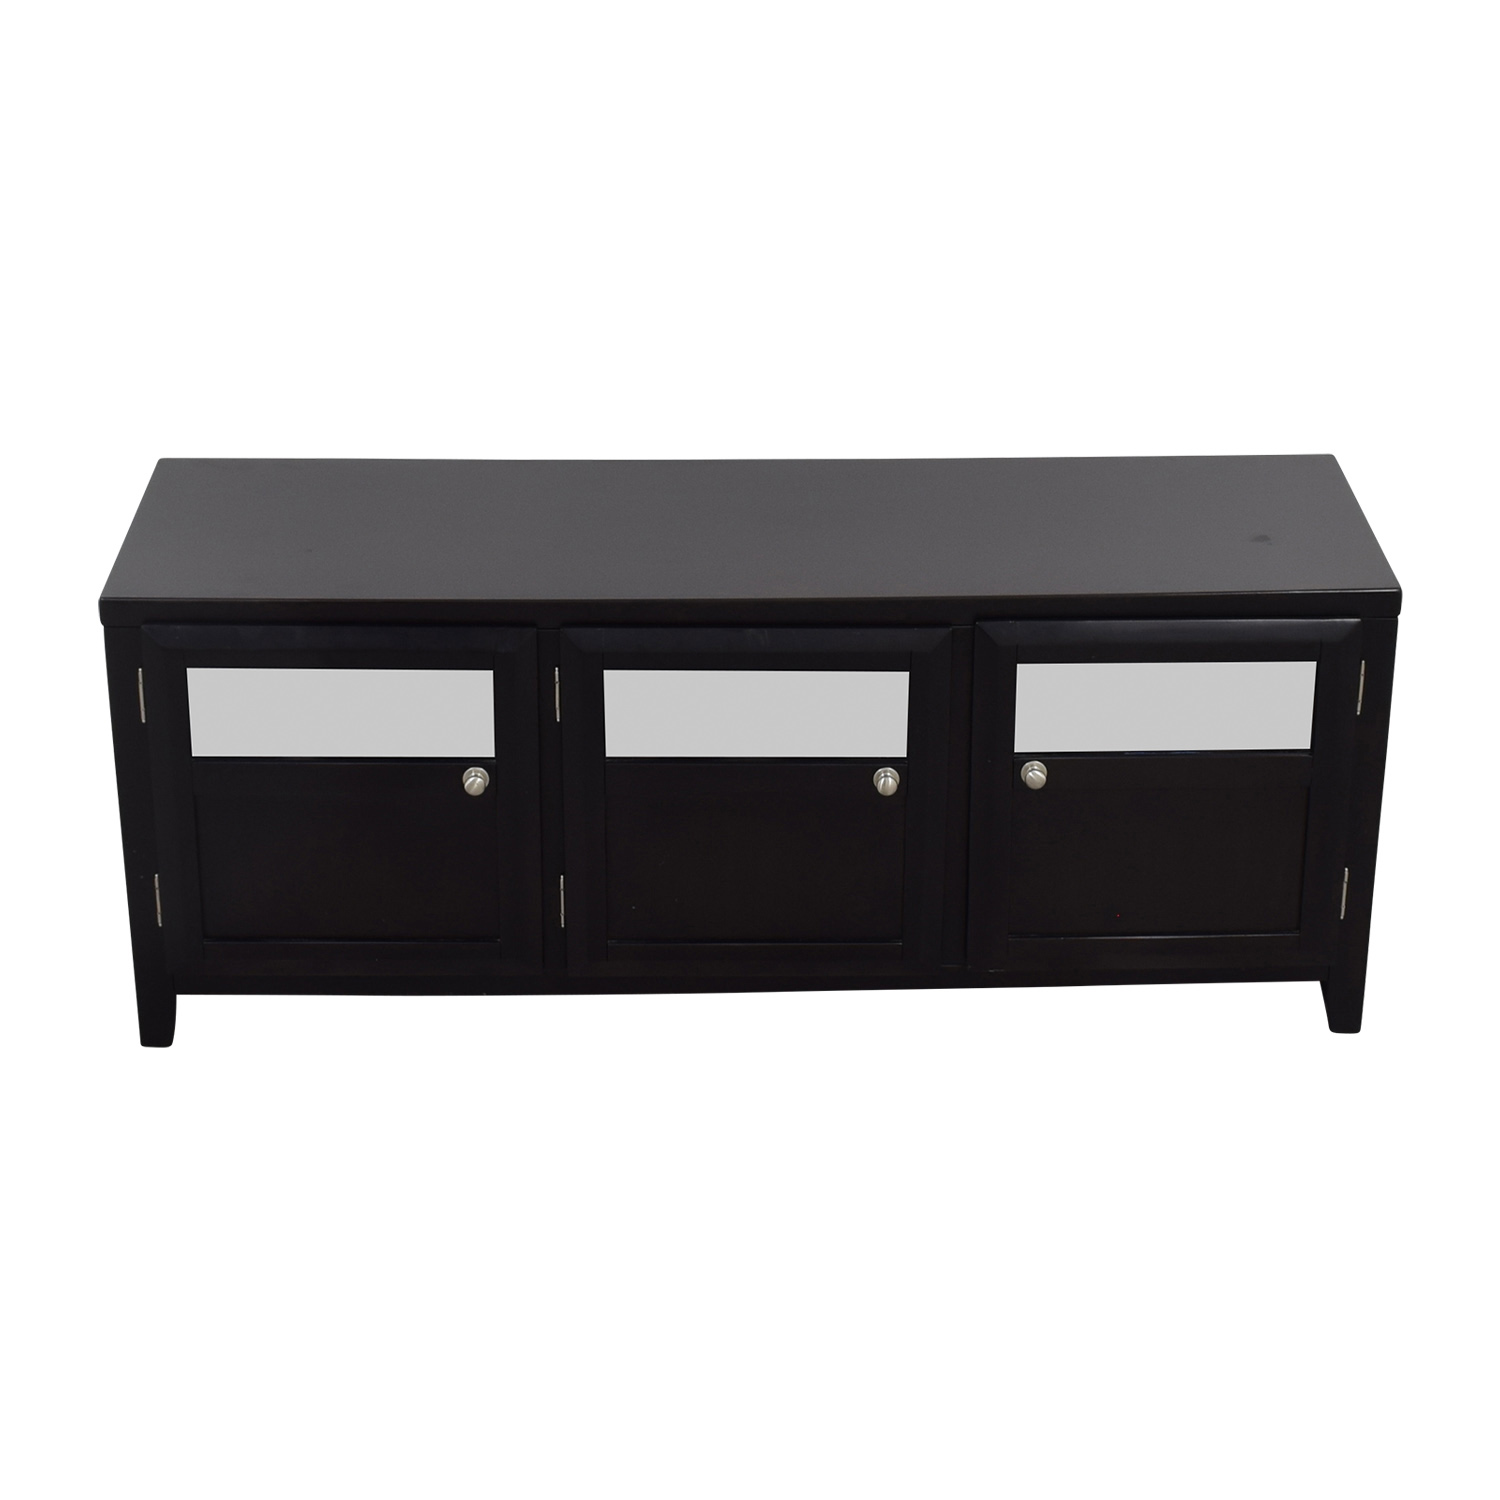 Target Target Wood & Glass TV Stand nyc